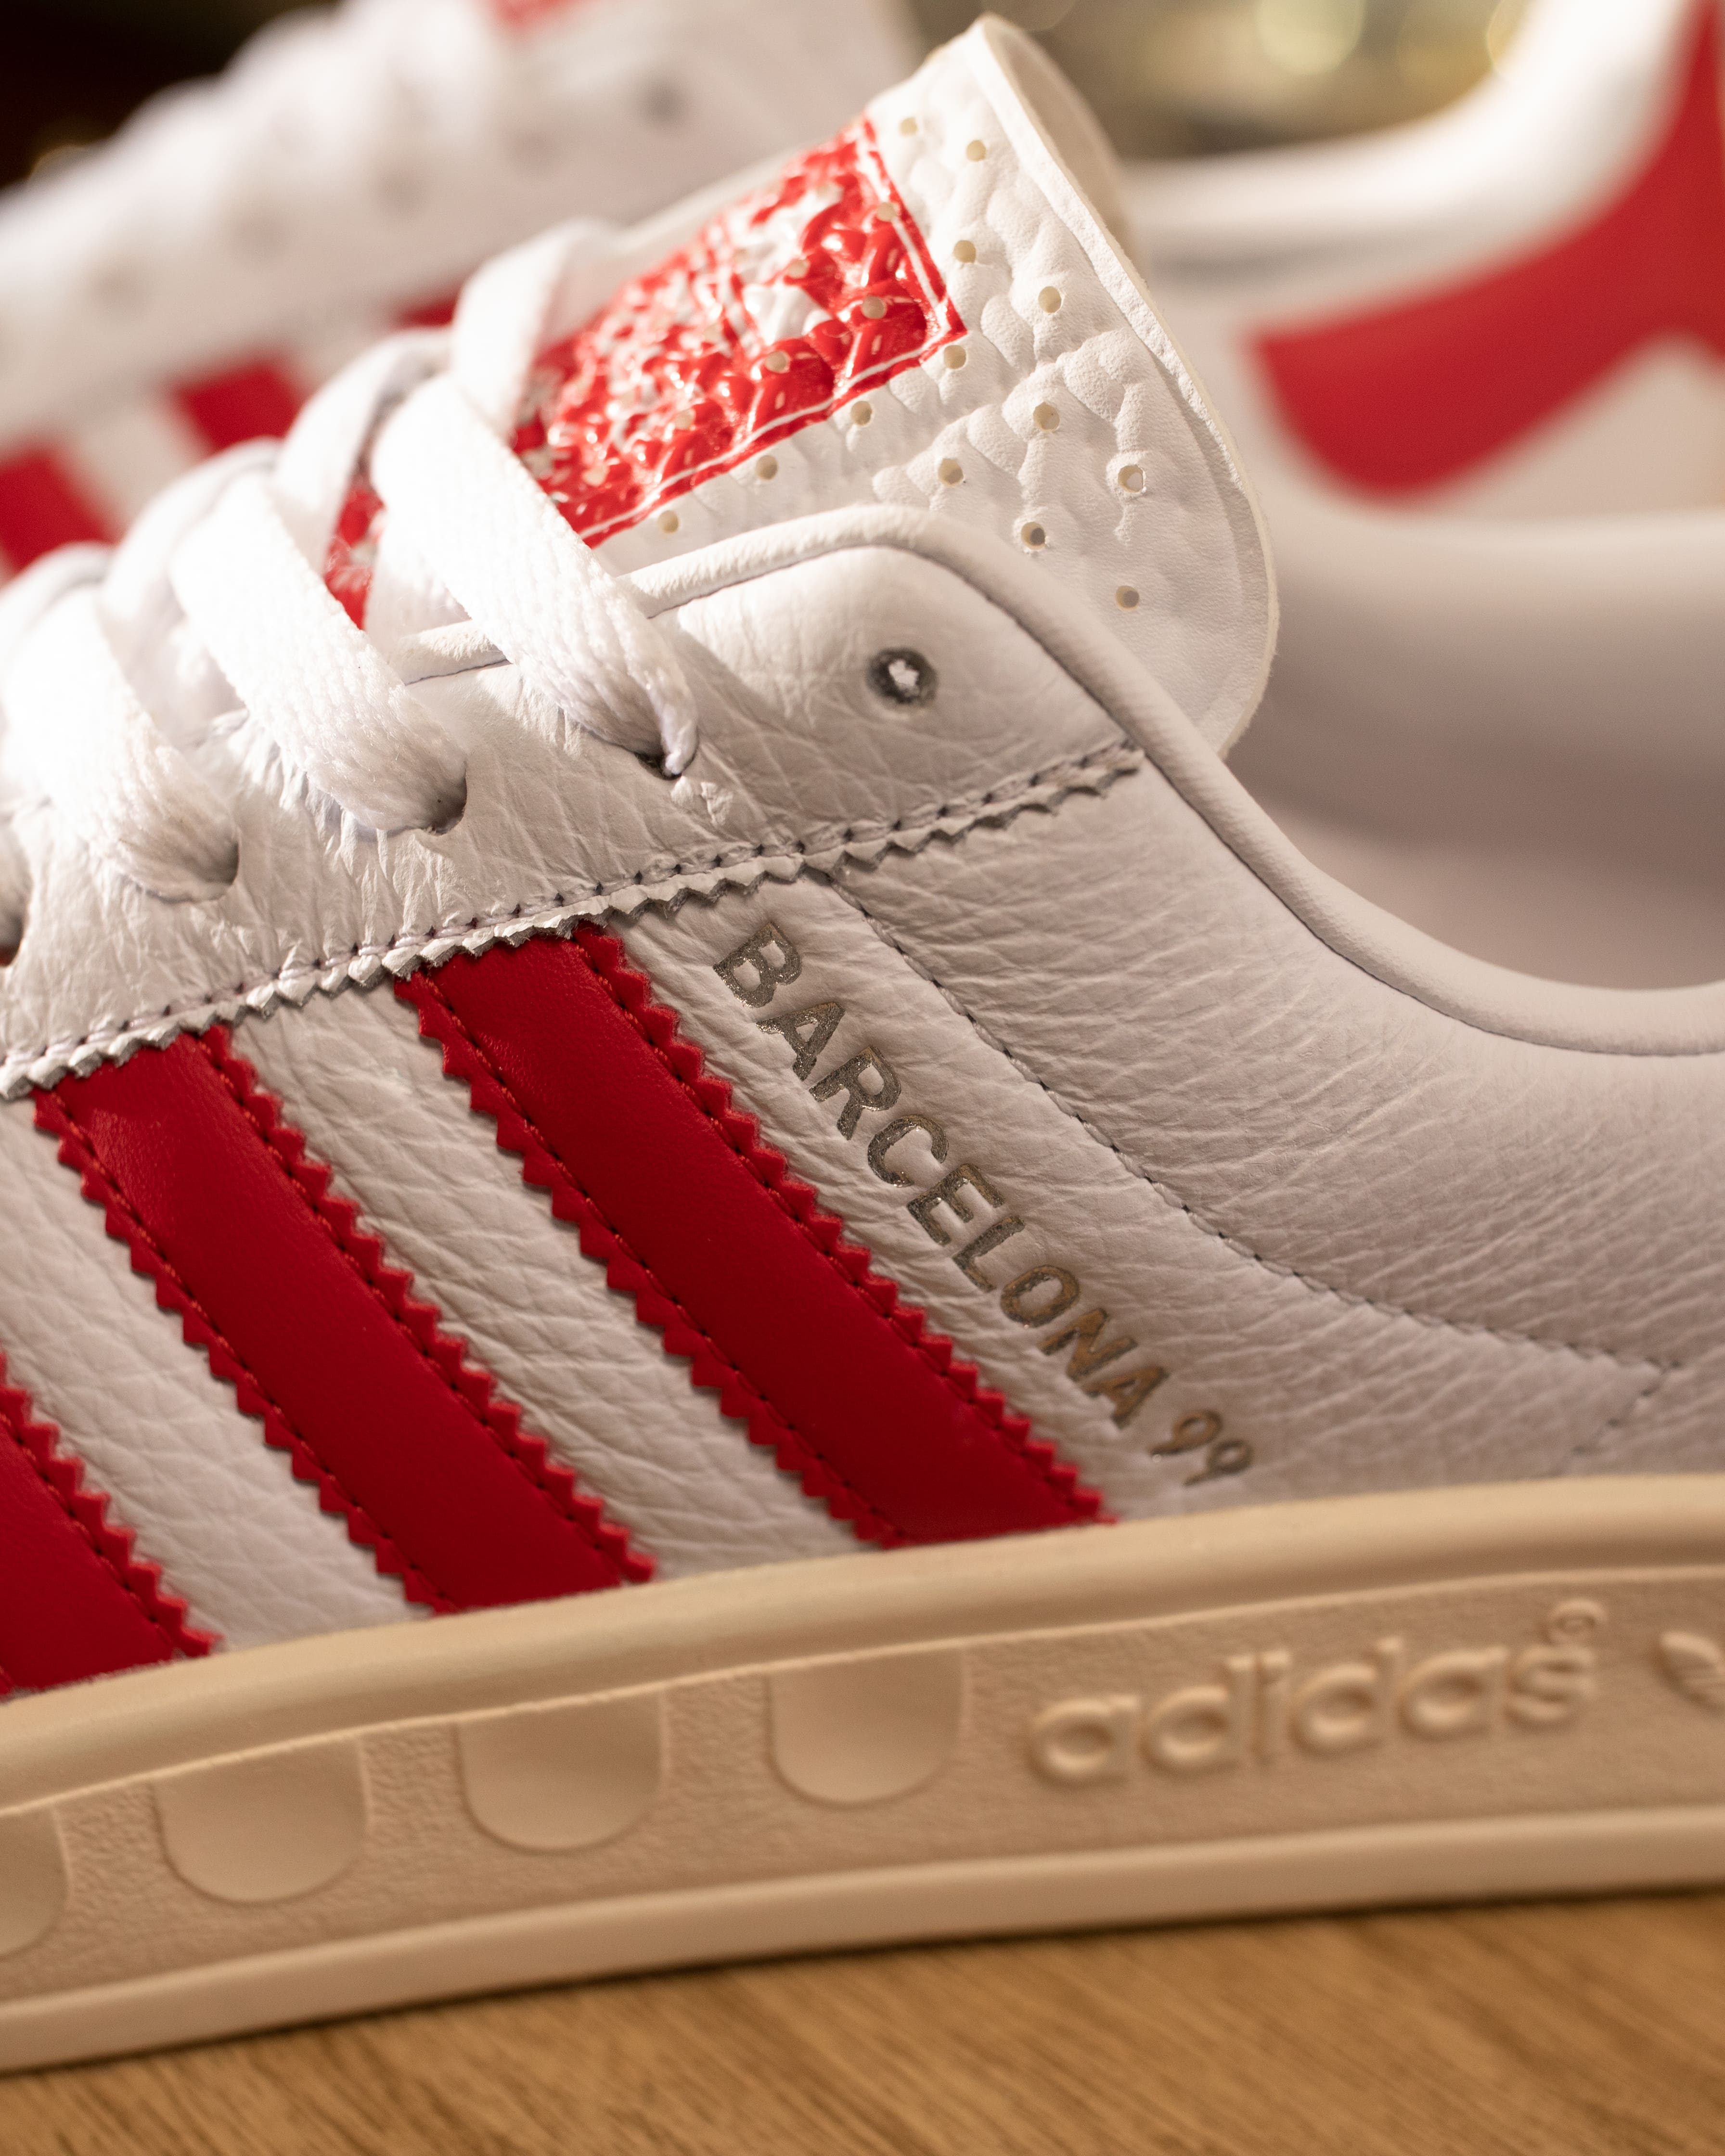 Adidas Originals x Manchester United Exclusively at size